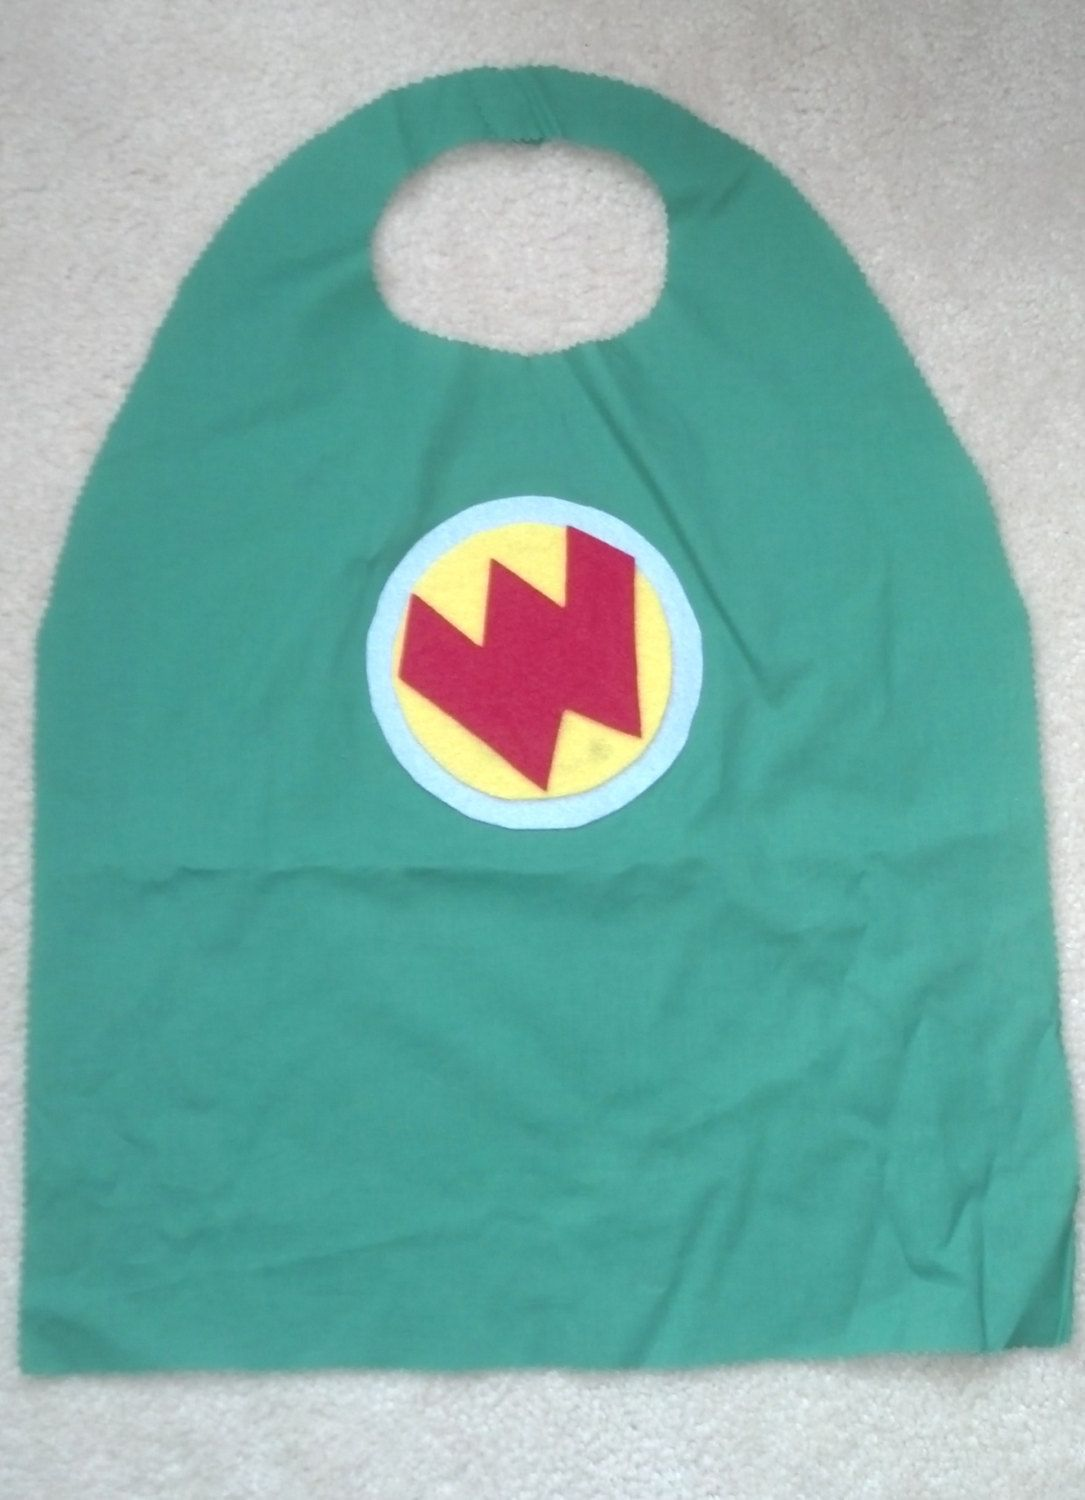 Toddler Wonder Pets Capes Great For Play Or Parties 7 00 Via Etsy Wonder Pets Animal Party Animal Theme